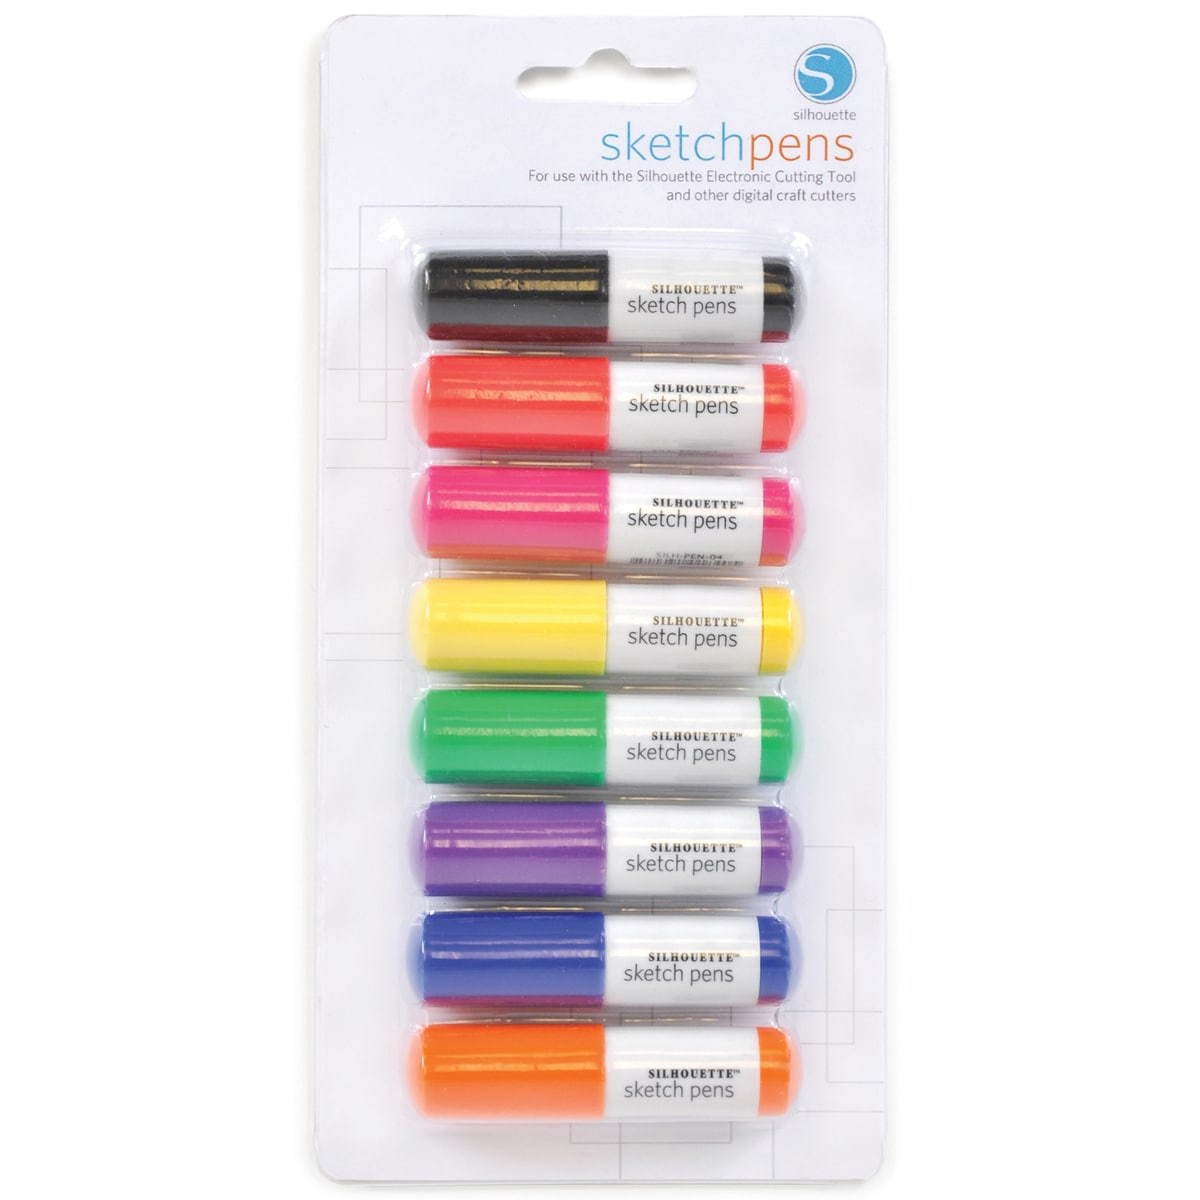 Silhouette Sketch Pen 8/Pkg-BLCK, RED, PINK, GRN, YLW, PUR, BLU, ORG